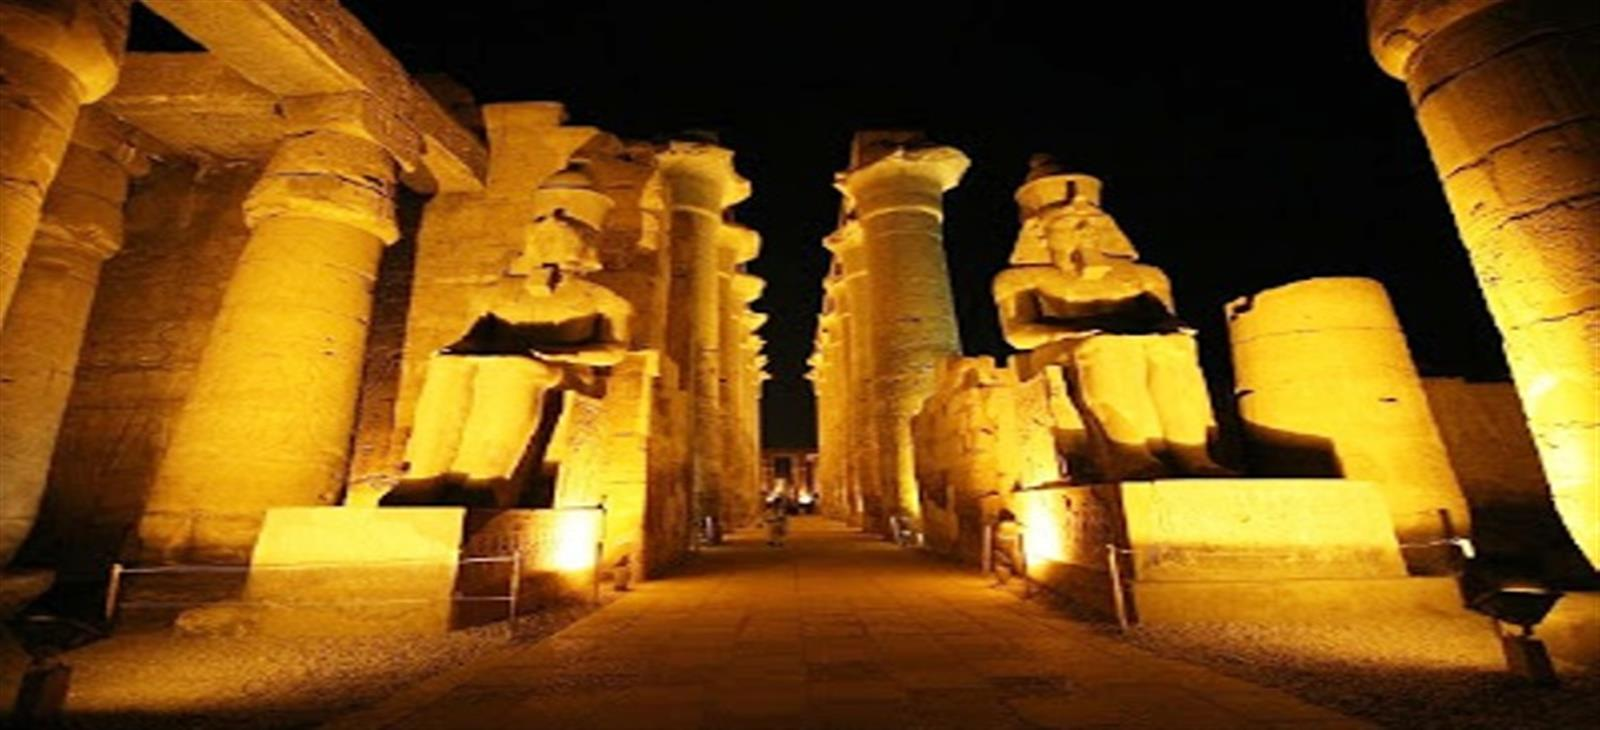 sound and light show luxor egypt